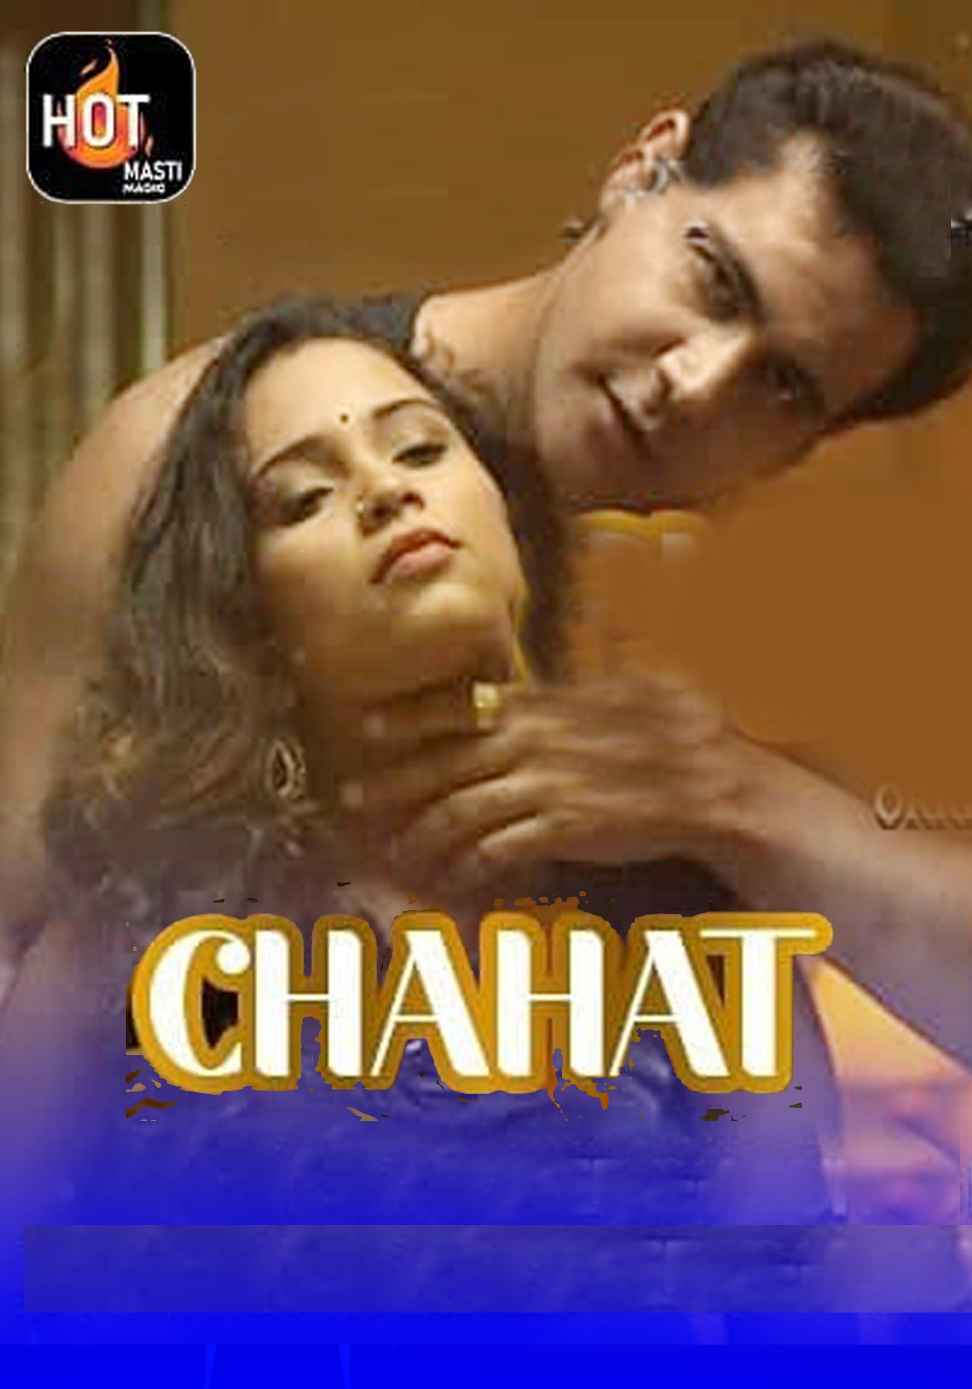 18+ Chahat 2021 S01E02 HotMasti Original Hindi Web Series 720p HDRip 150MB x264 AAC